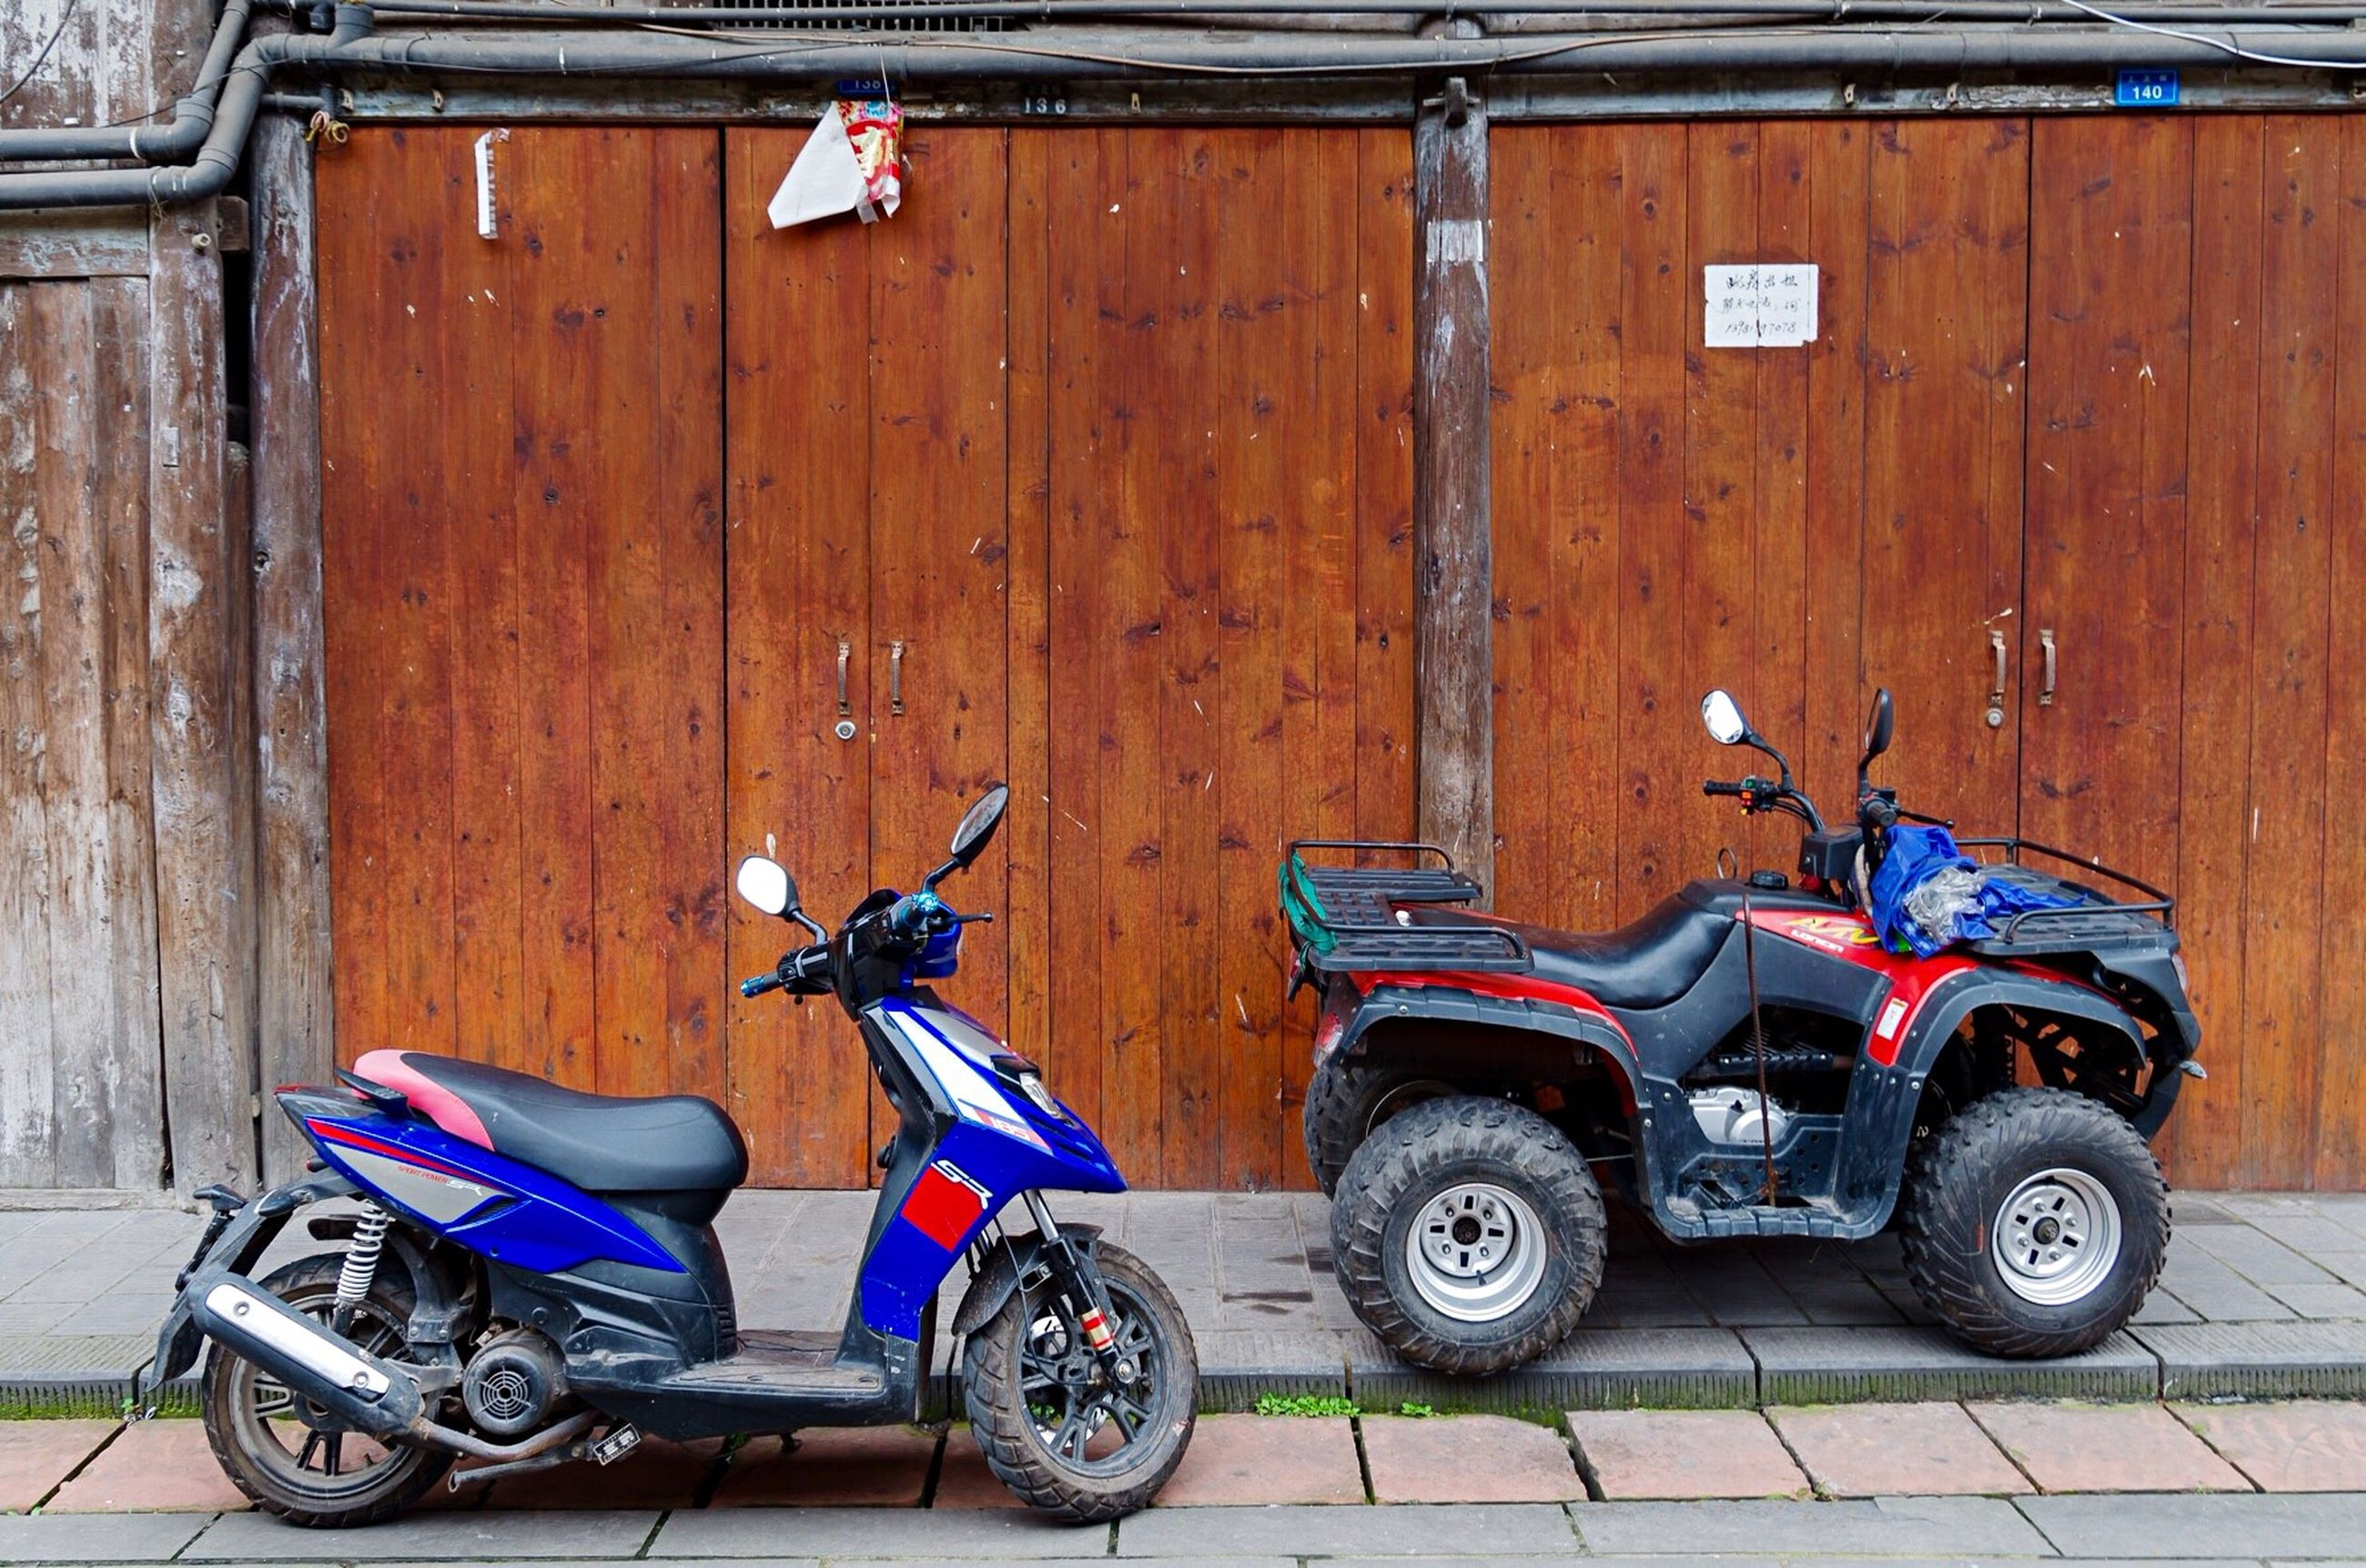 land vehicle, mode of transport, stationary, parking, parked, day, outdoors, no people, parking lot, blue